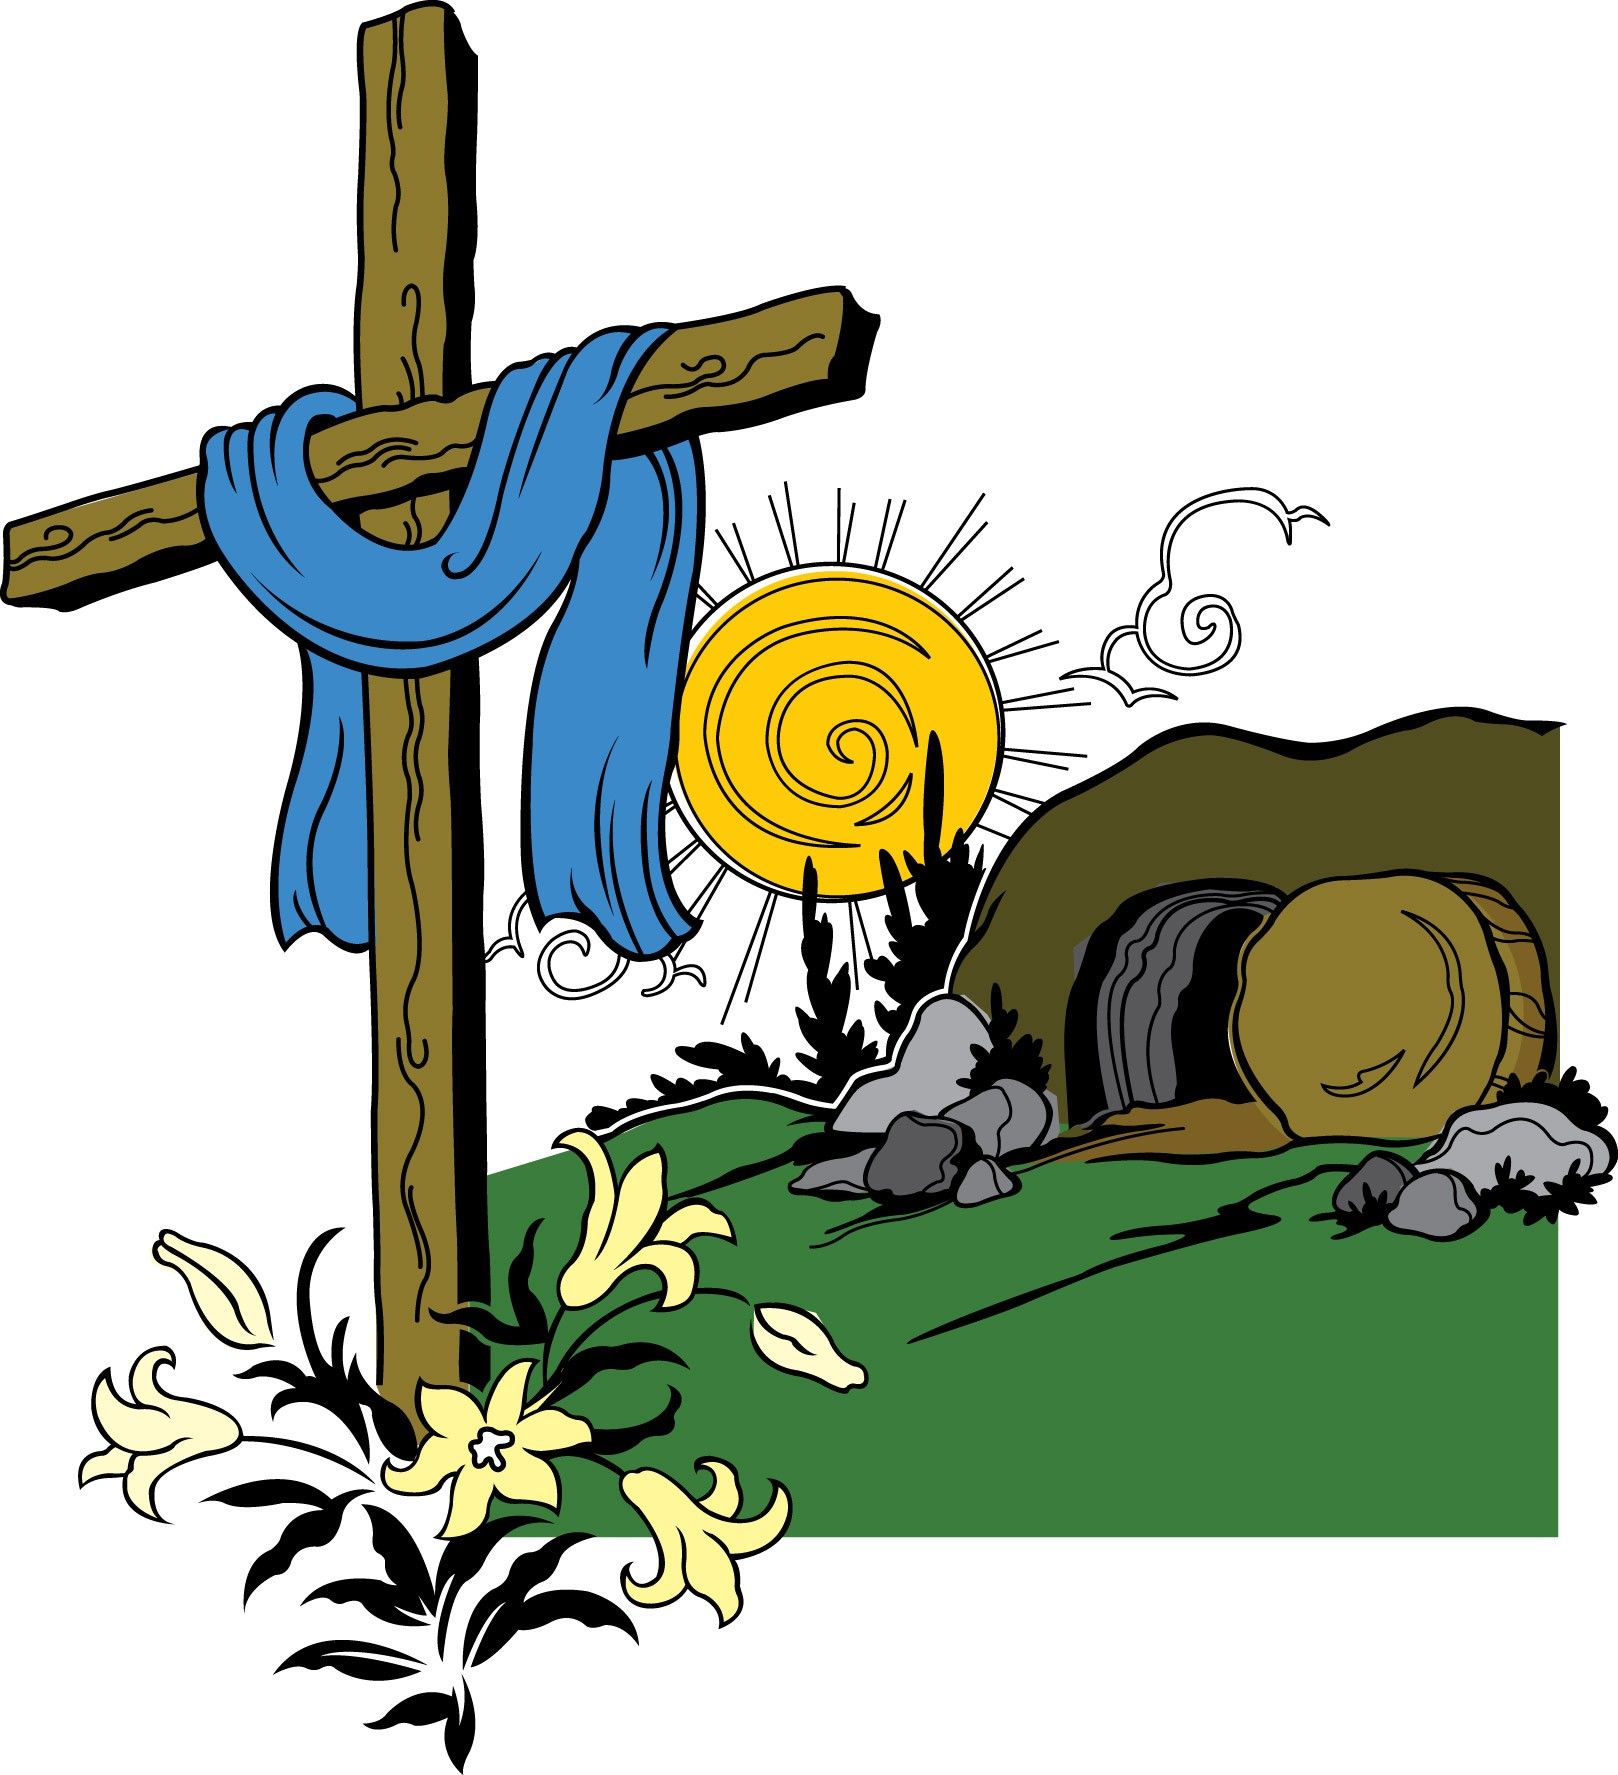 Empty tomb clipart tomb jesus. Coloring pictures of best